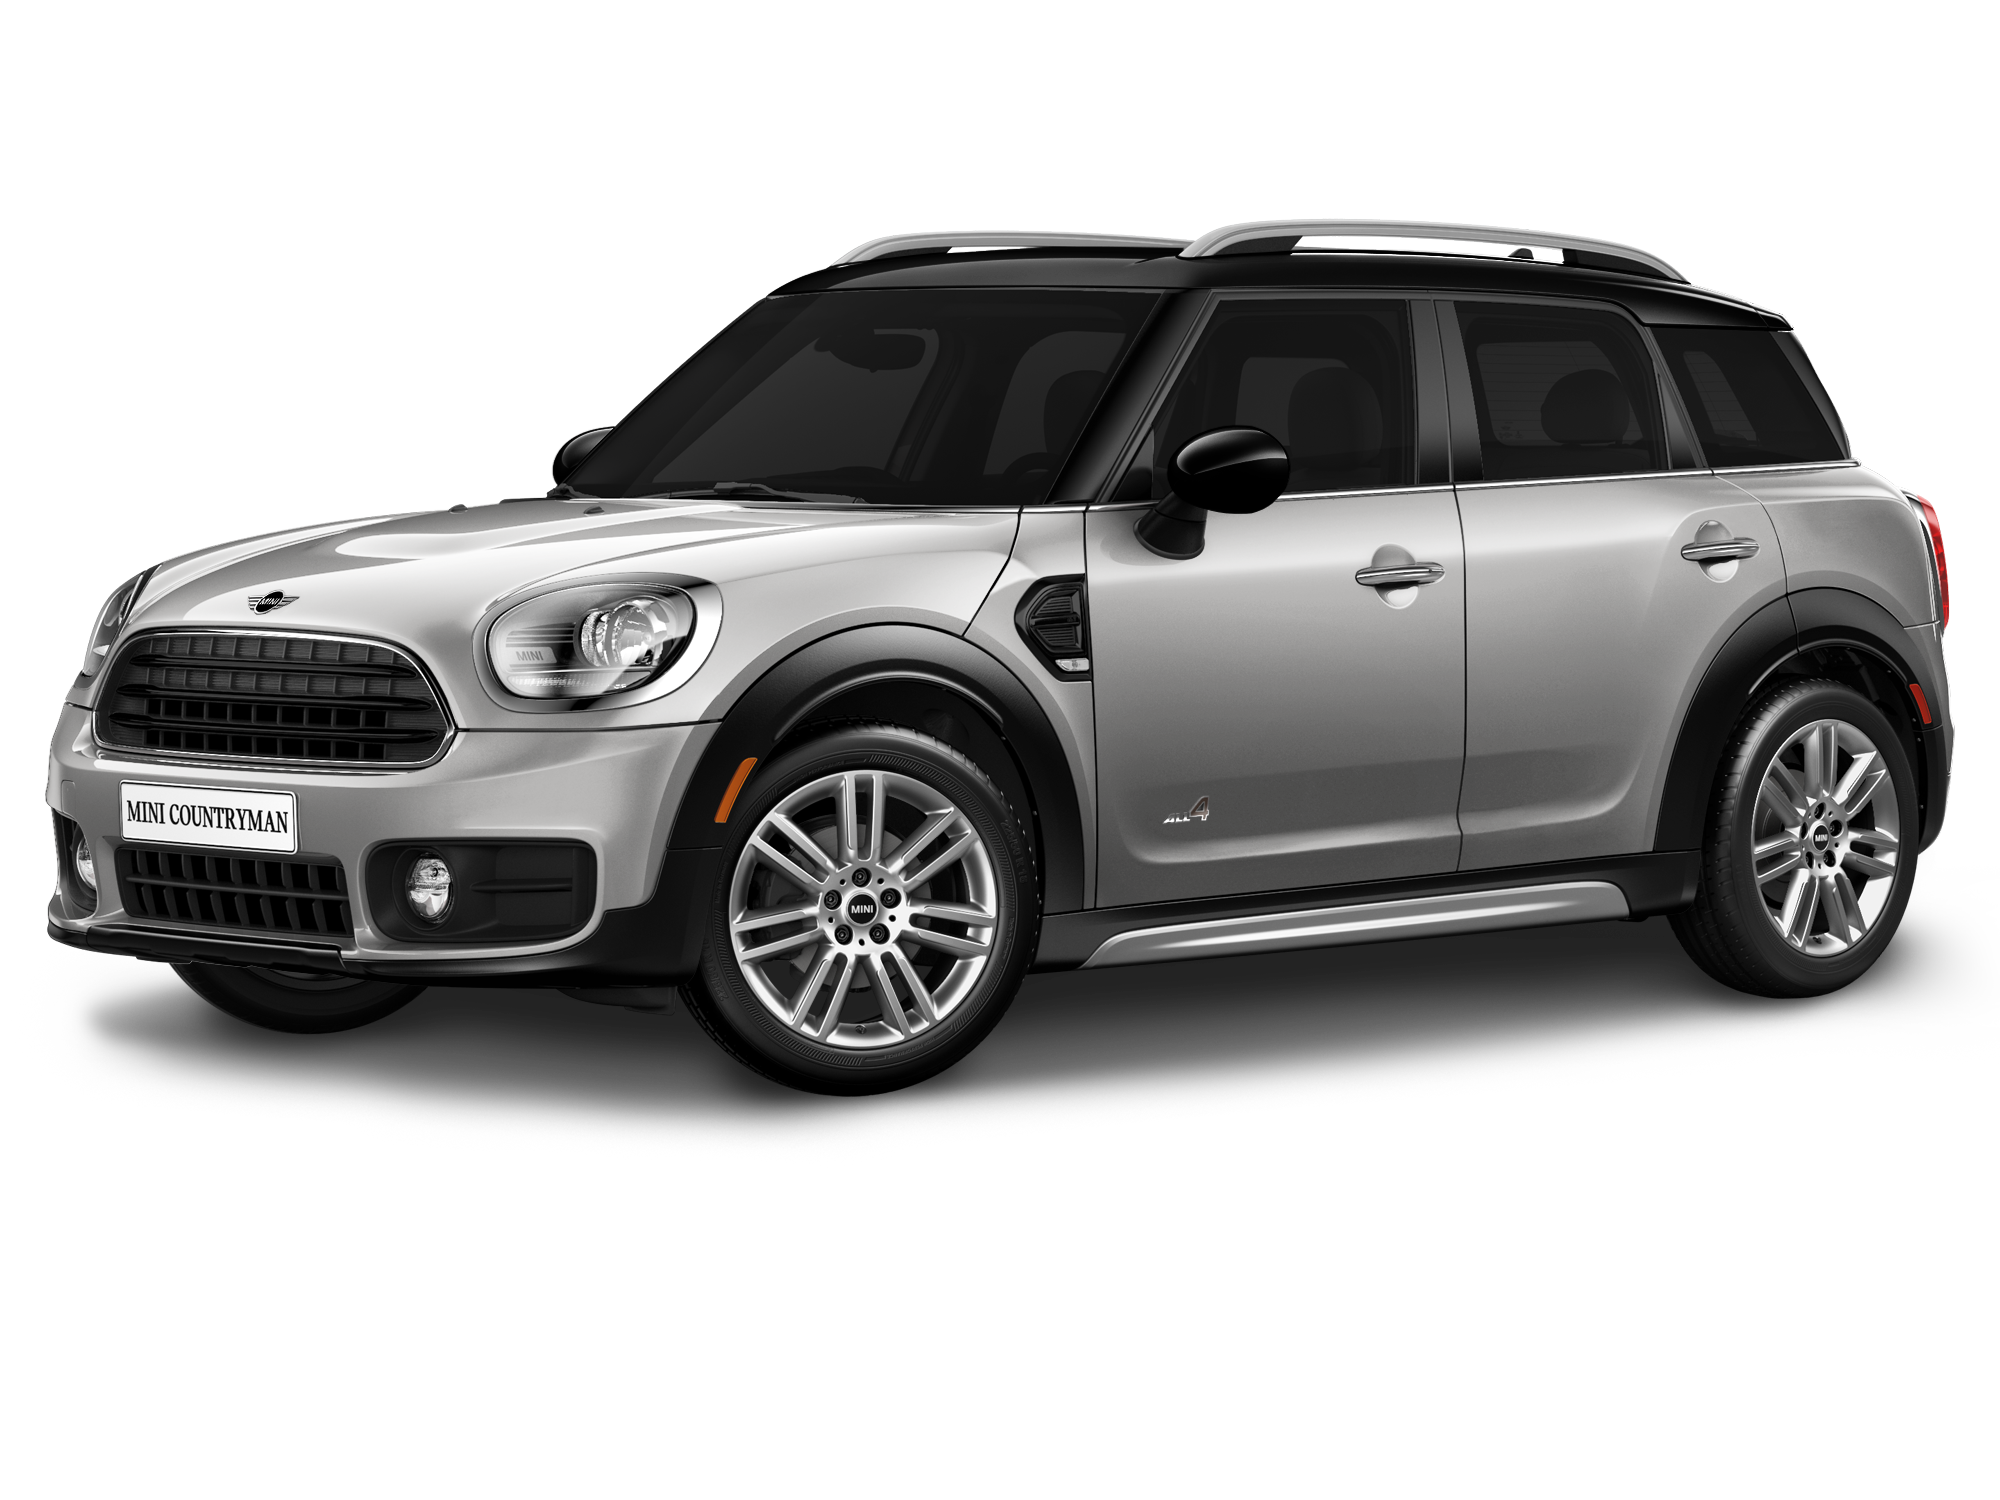 New Mini Cars For Sale In White Plains Ny